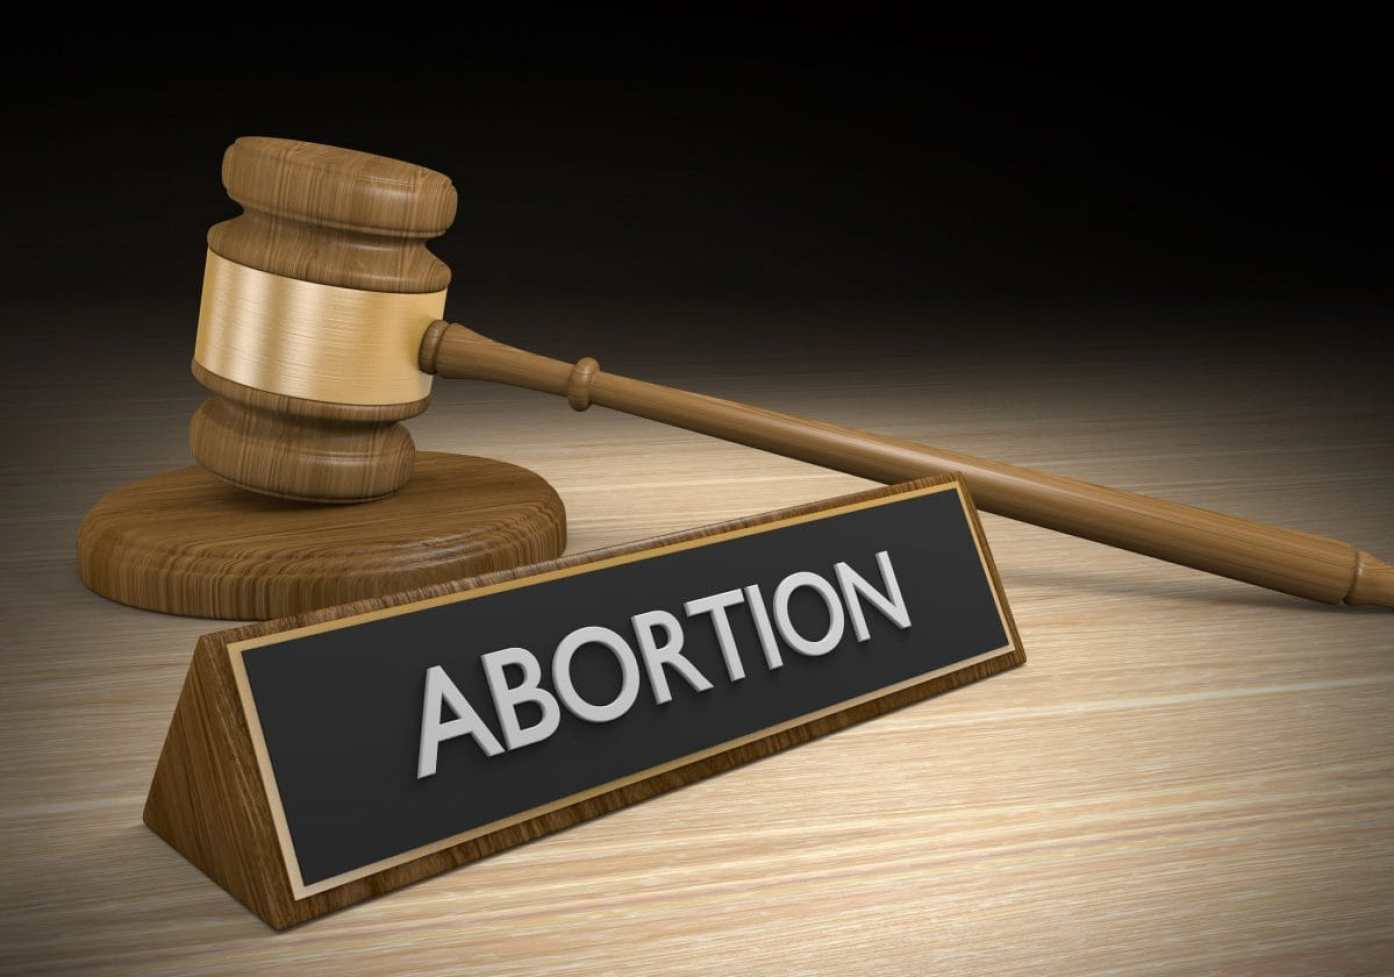 45352241 - court legal concept of abortion law, Copyright: kagenmi / 123RF Stock Photo. Several cases are provoking debate around India's abortion law - and whether it's time for change